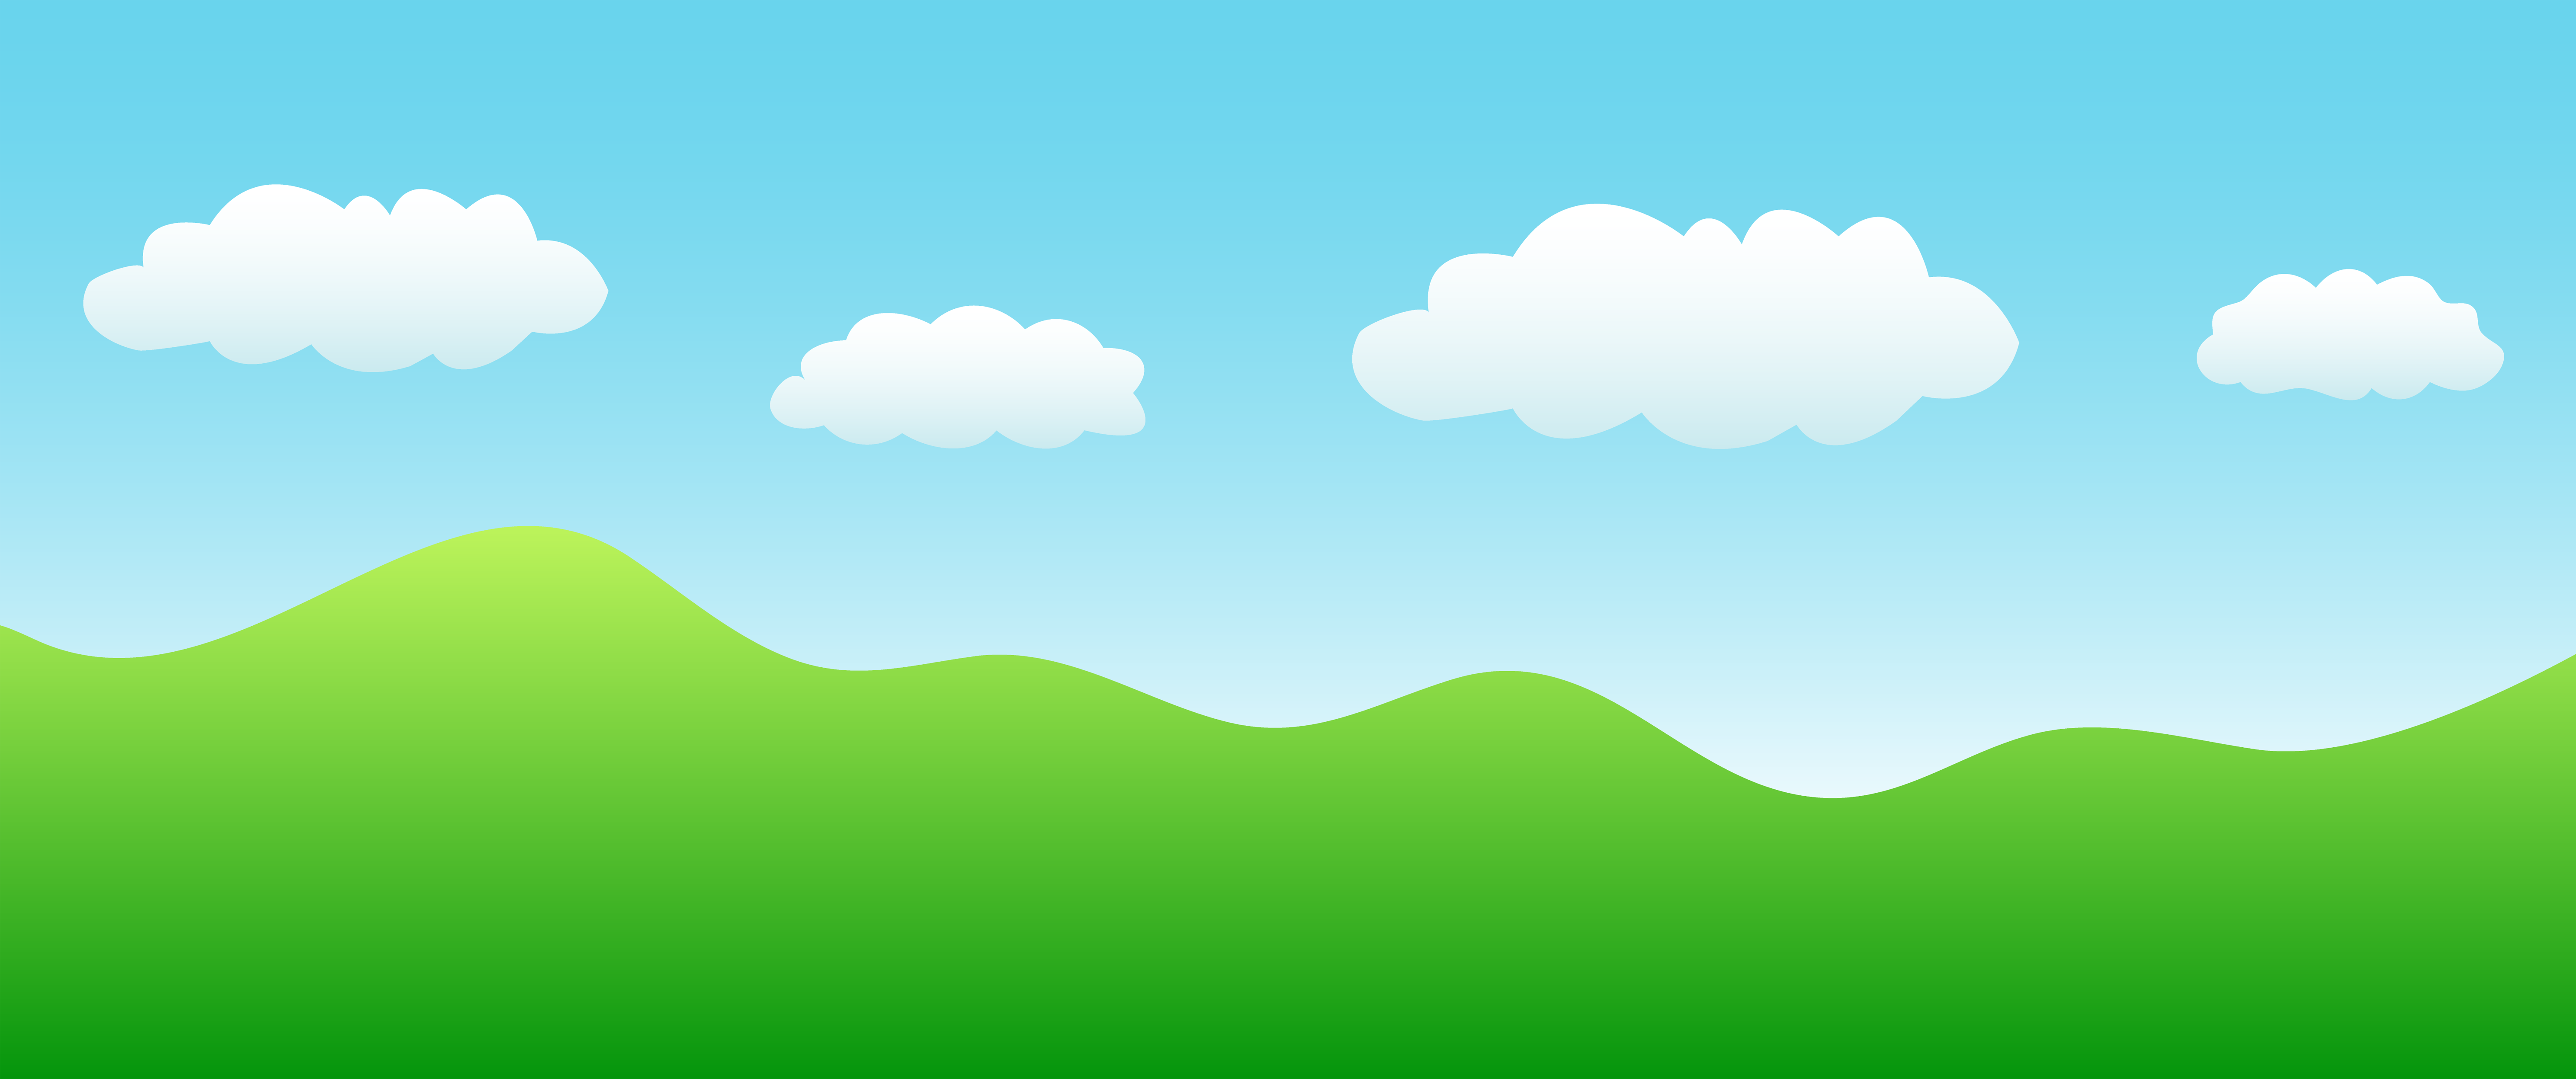 Simple Landscape With Hills And Sky Free Clip Art